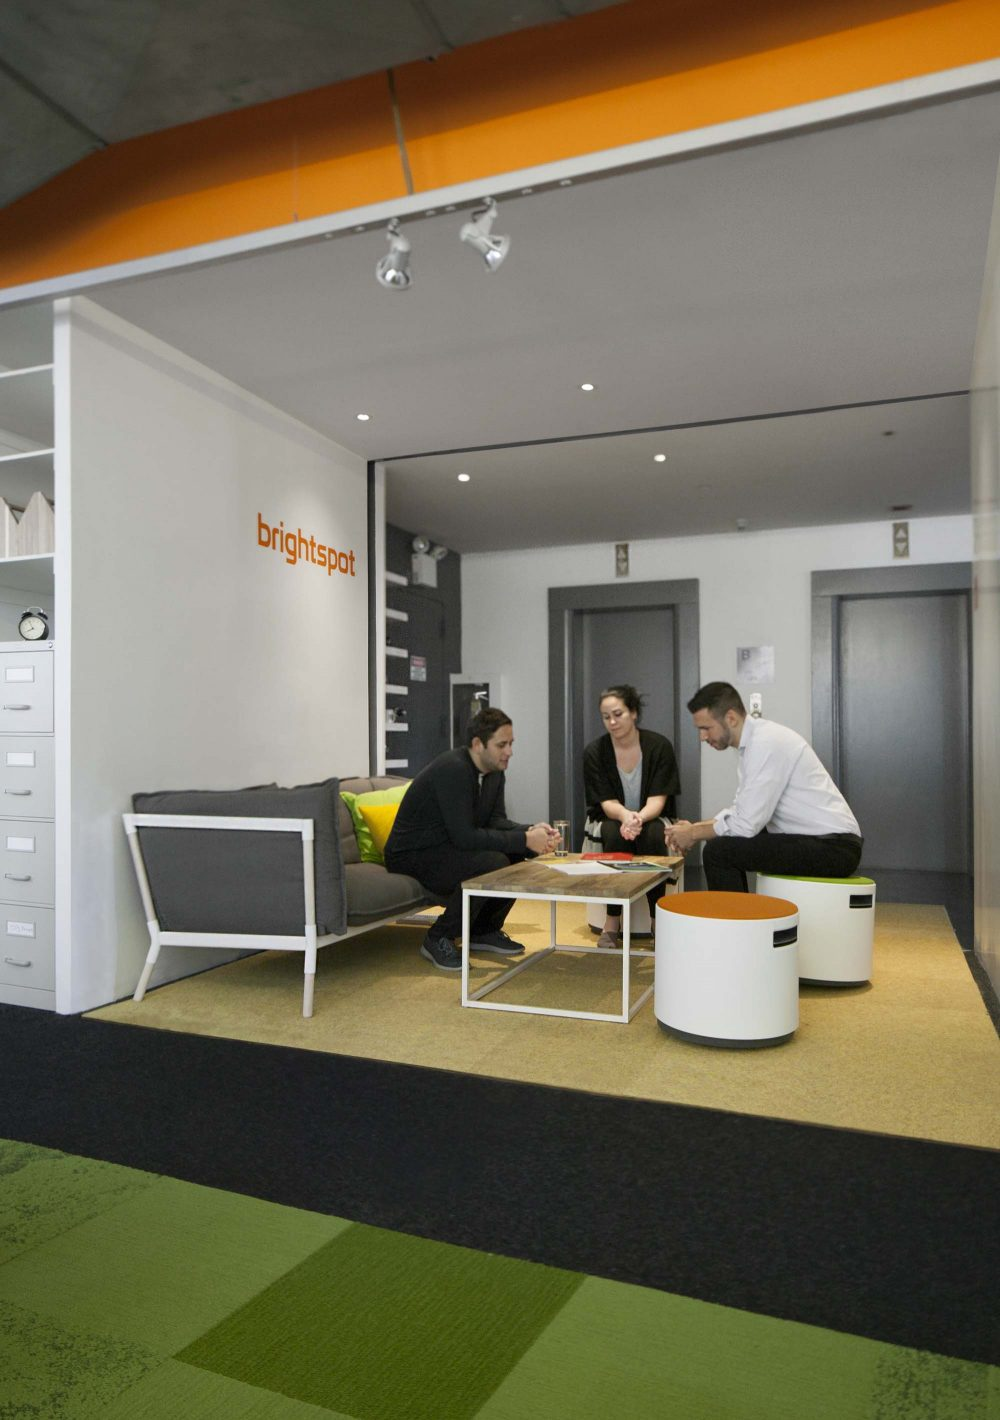 The Porch entrance space can serve as both a waiting and reception area, and place for informal meetings between staff members